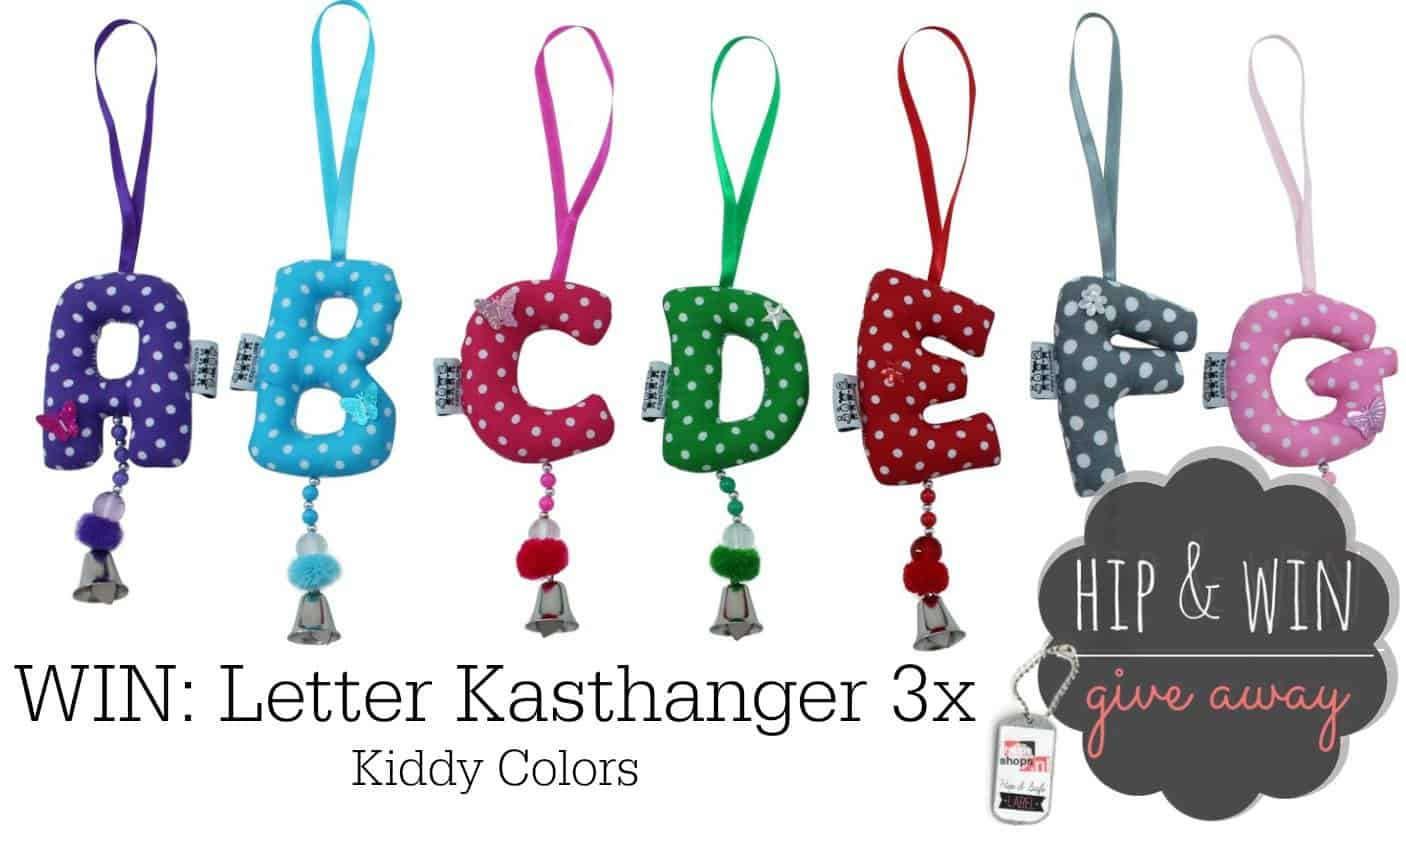 WIN: 3x Letter Kasthangers van KiddyColors.com